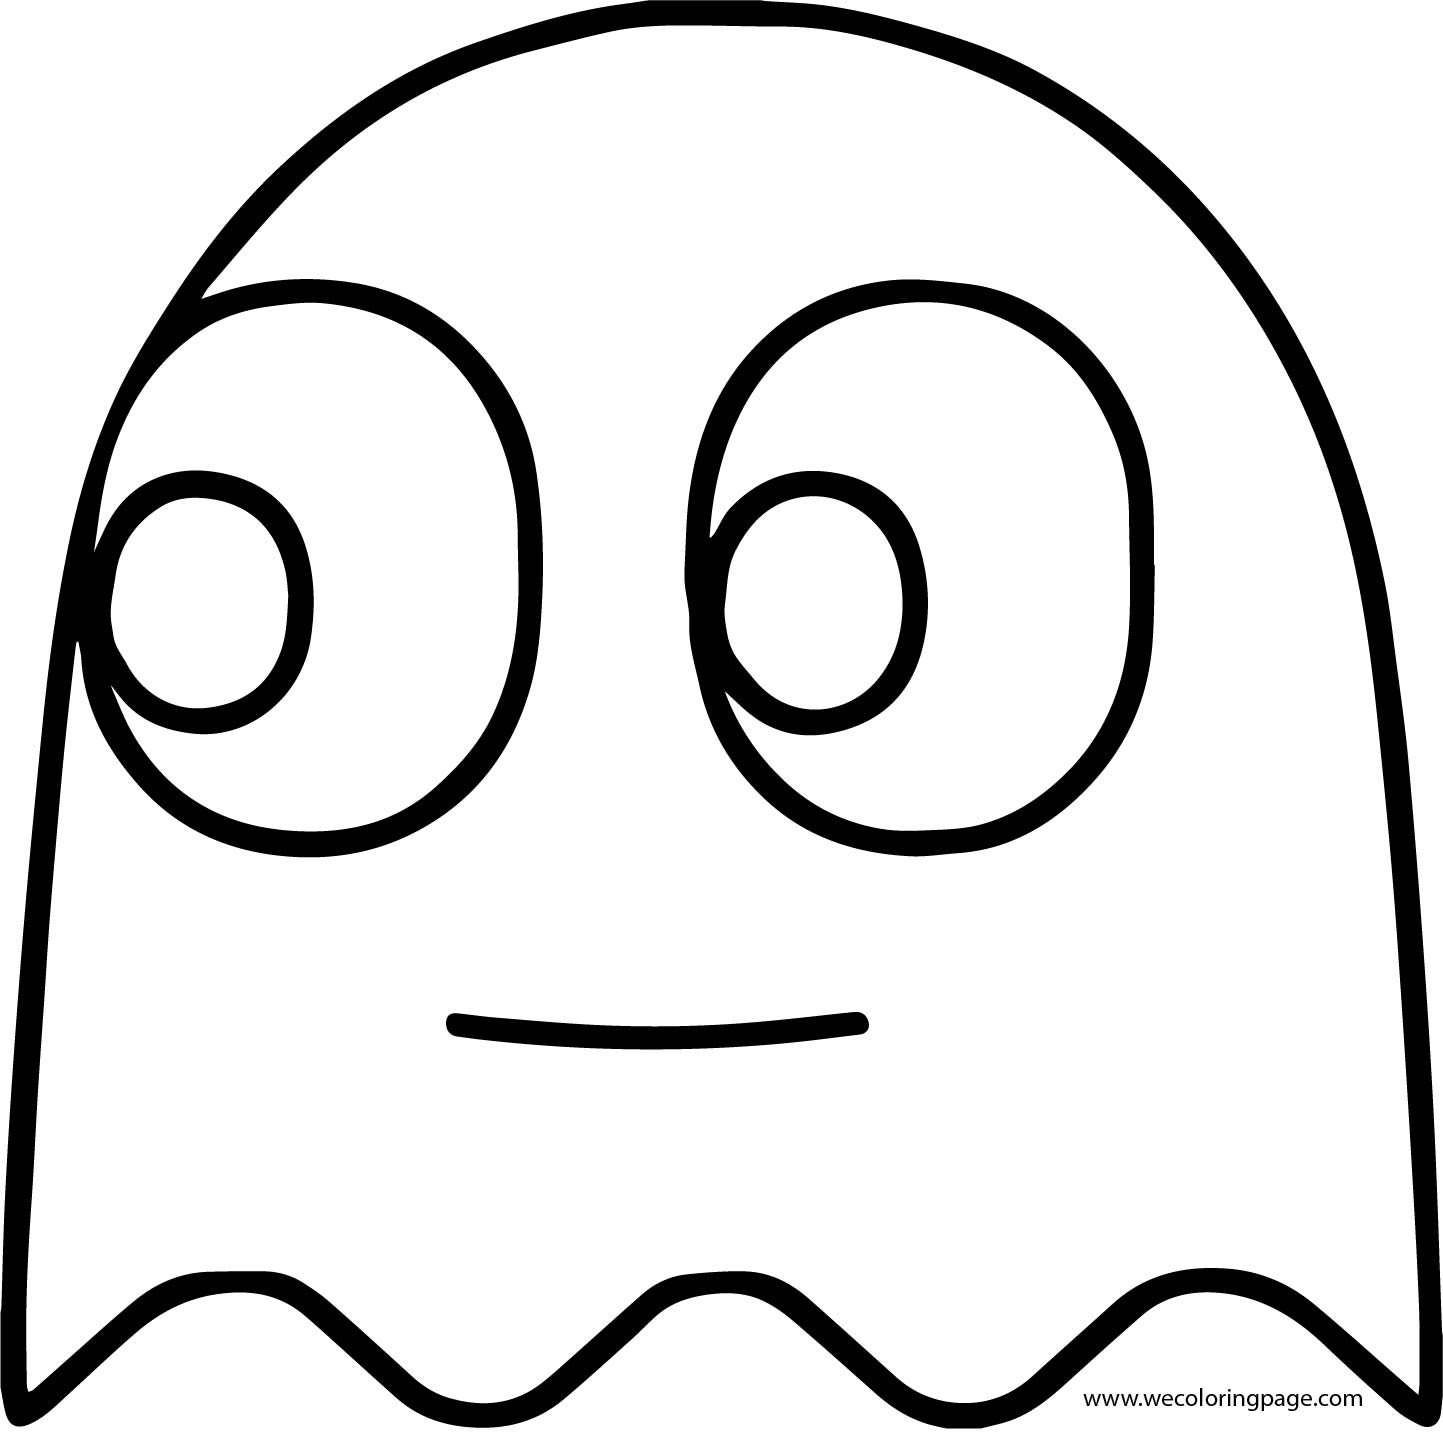 Pacman Pac Man Ghost Coloring